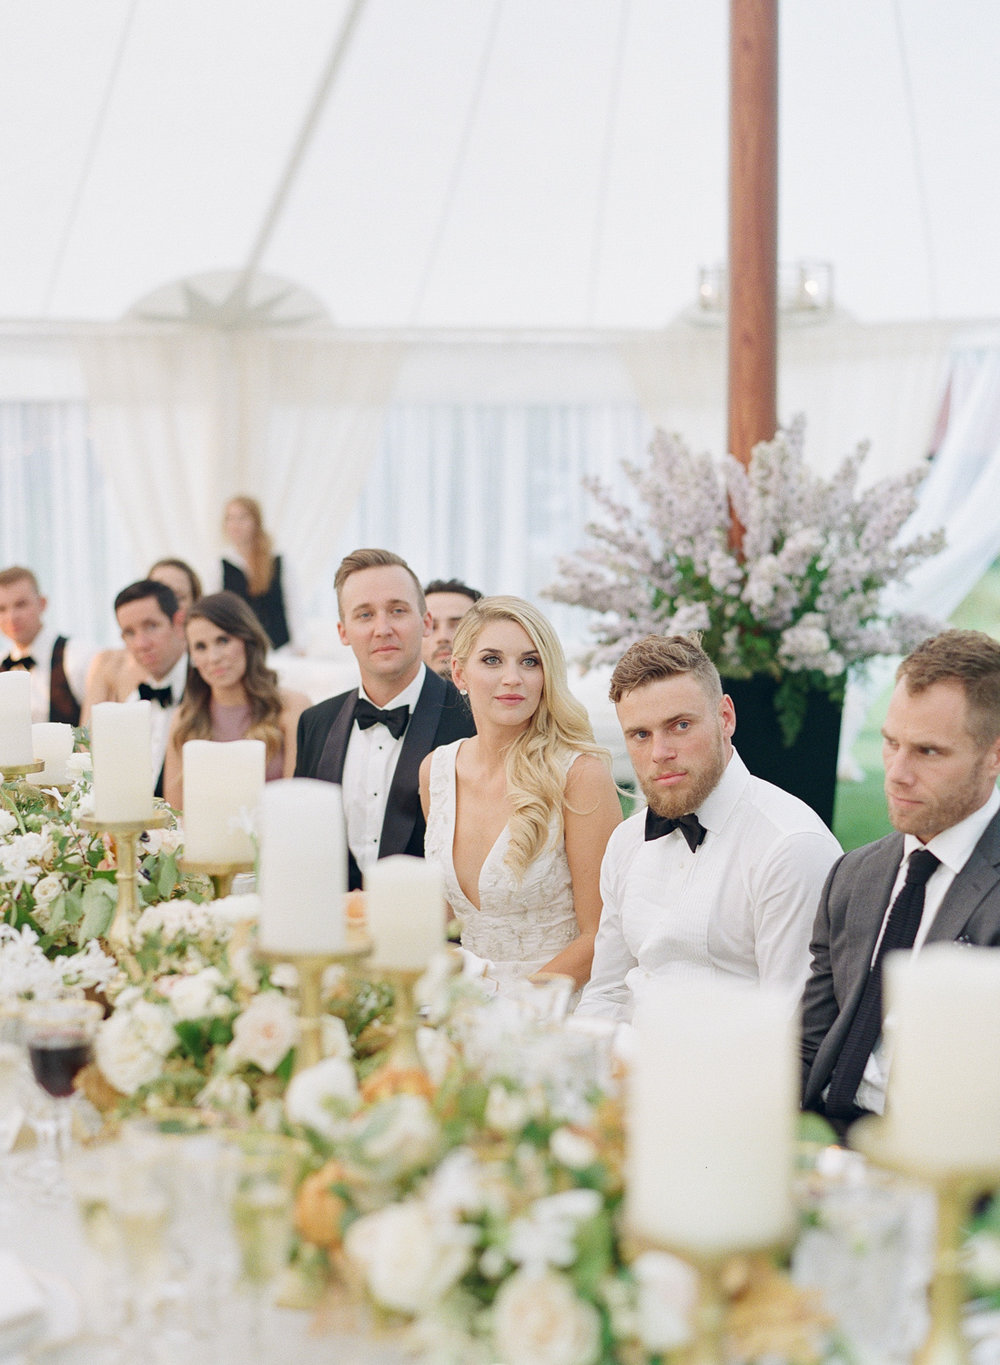 Gus Kenworthy sits with the bride and groom at the wedding reception during toasts; Sylvie Gil Photography